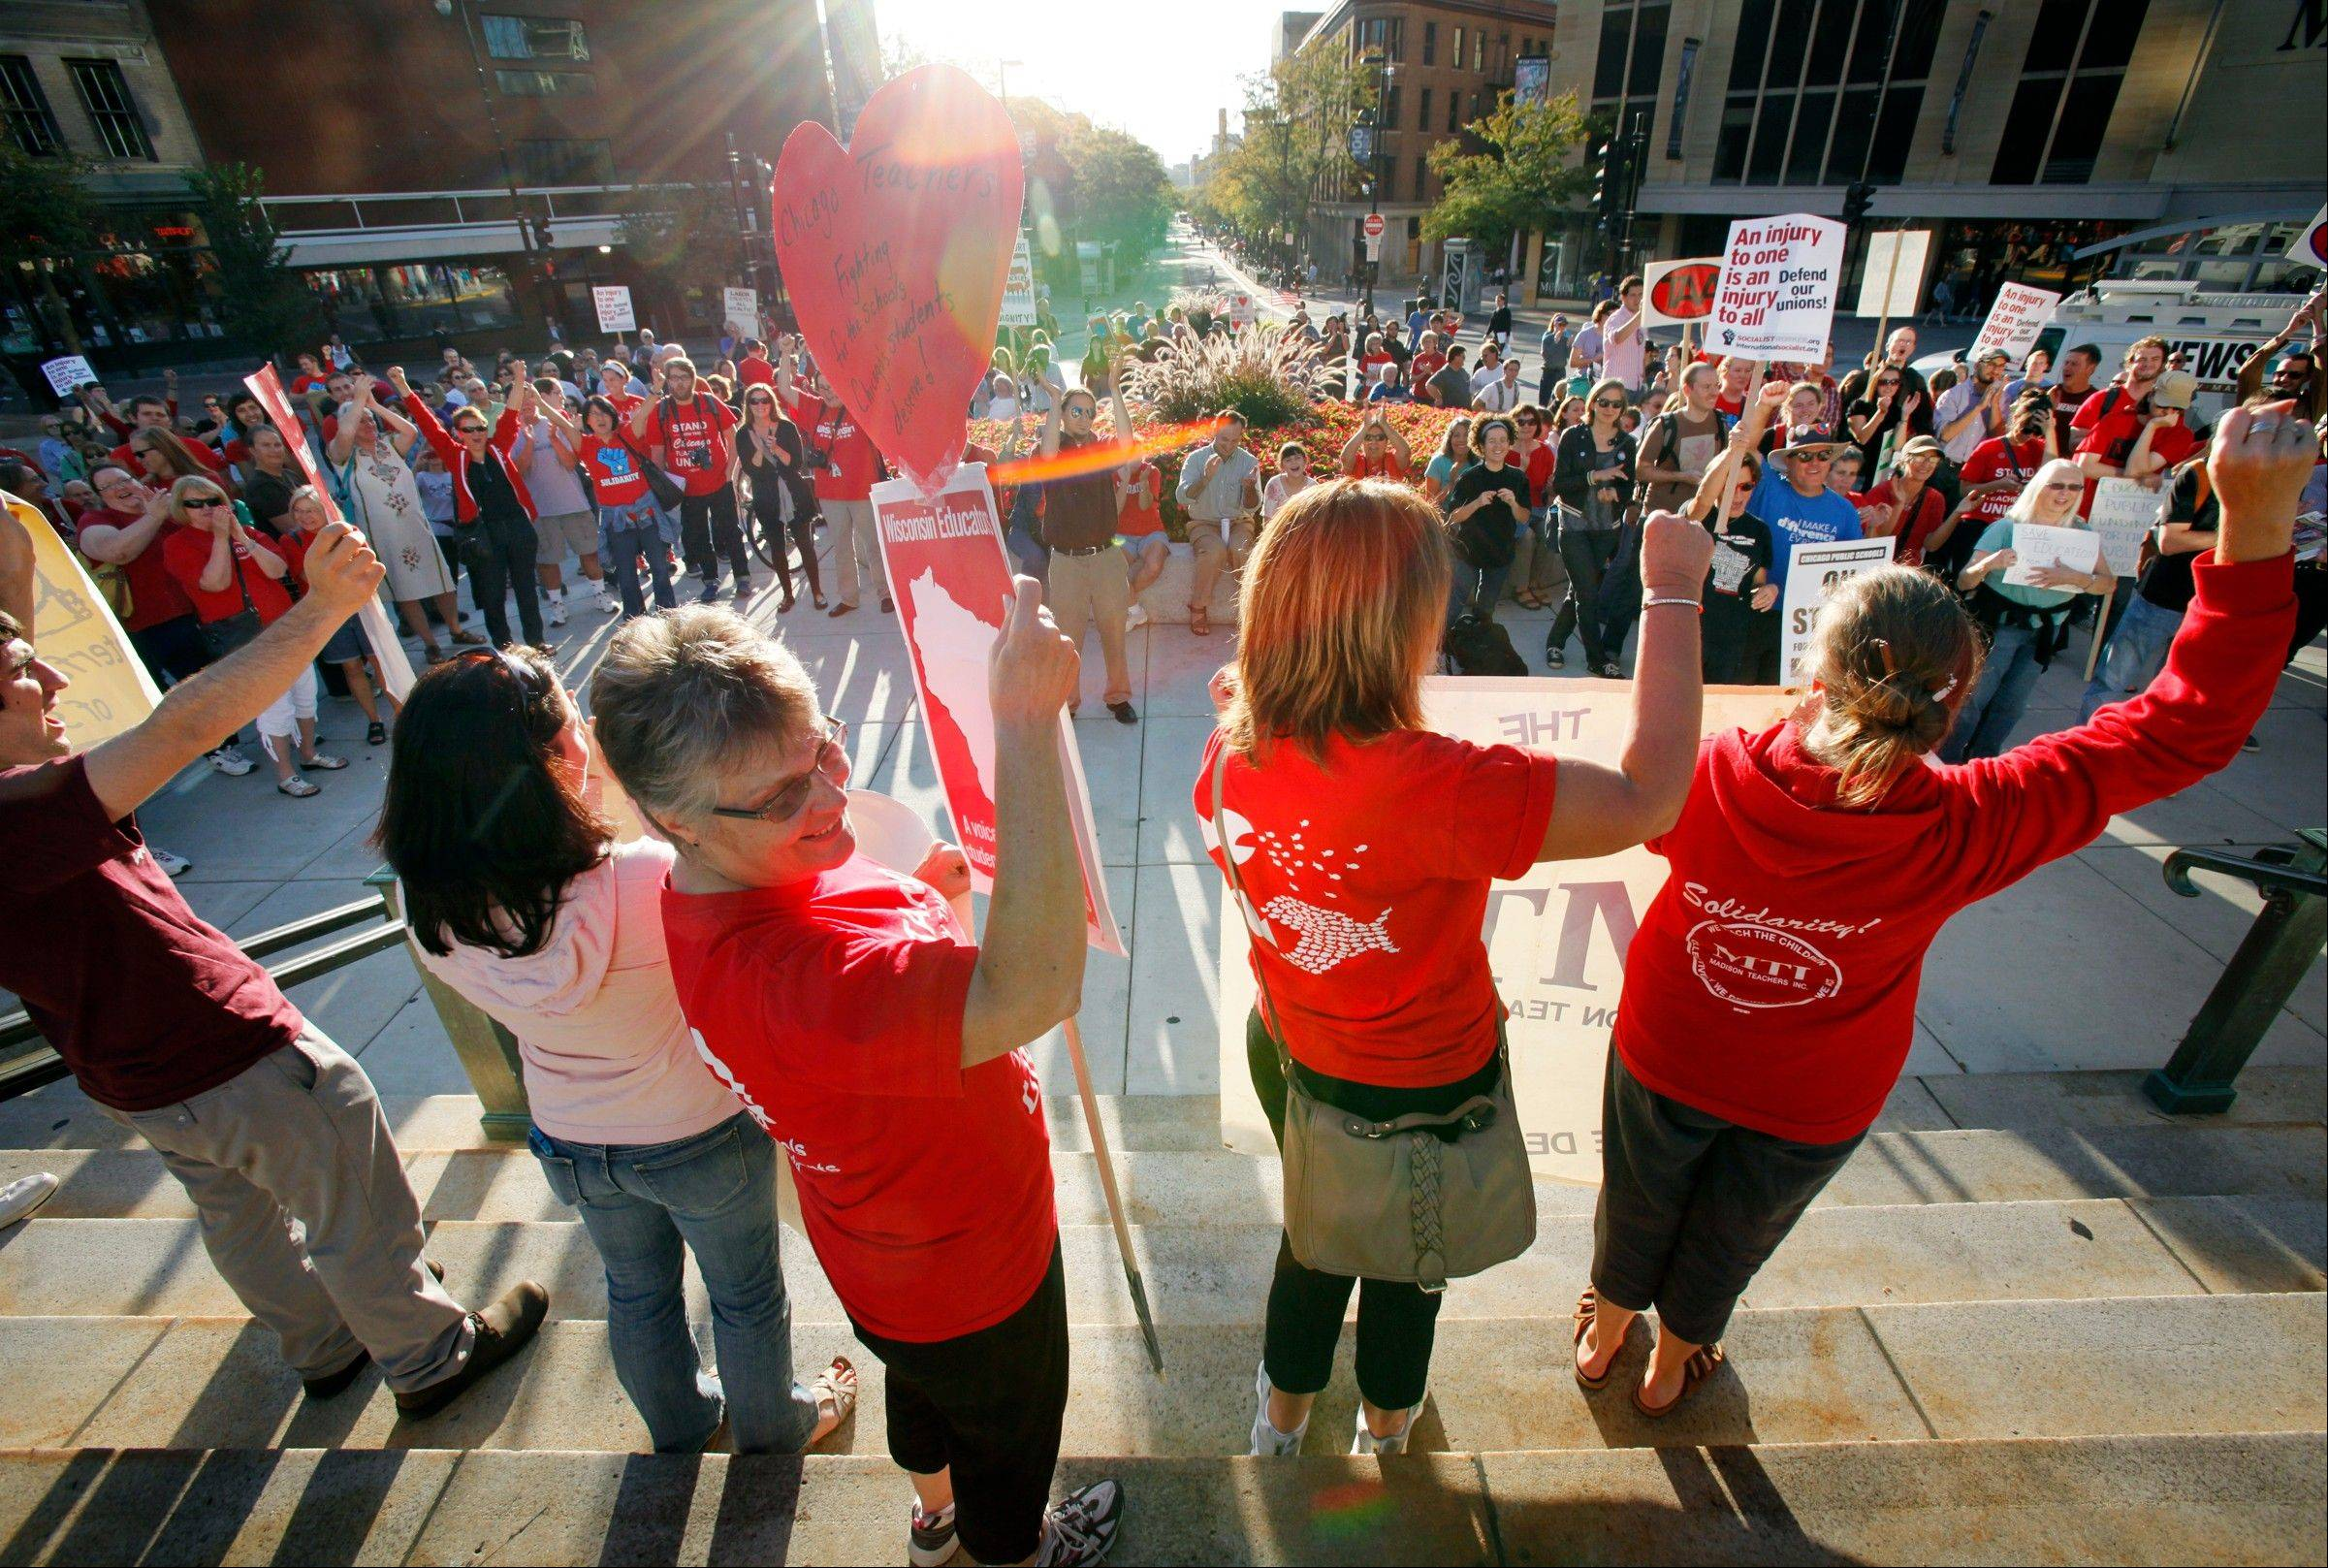 Teachers cheer during a rally at the Wisconsin state Capitol in Madison on Friday.